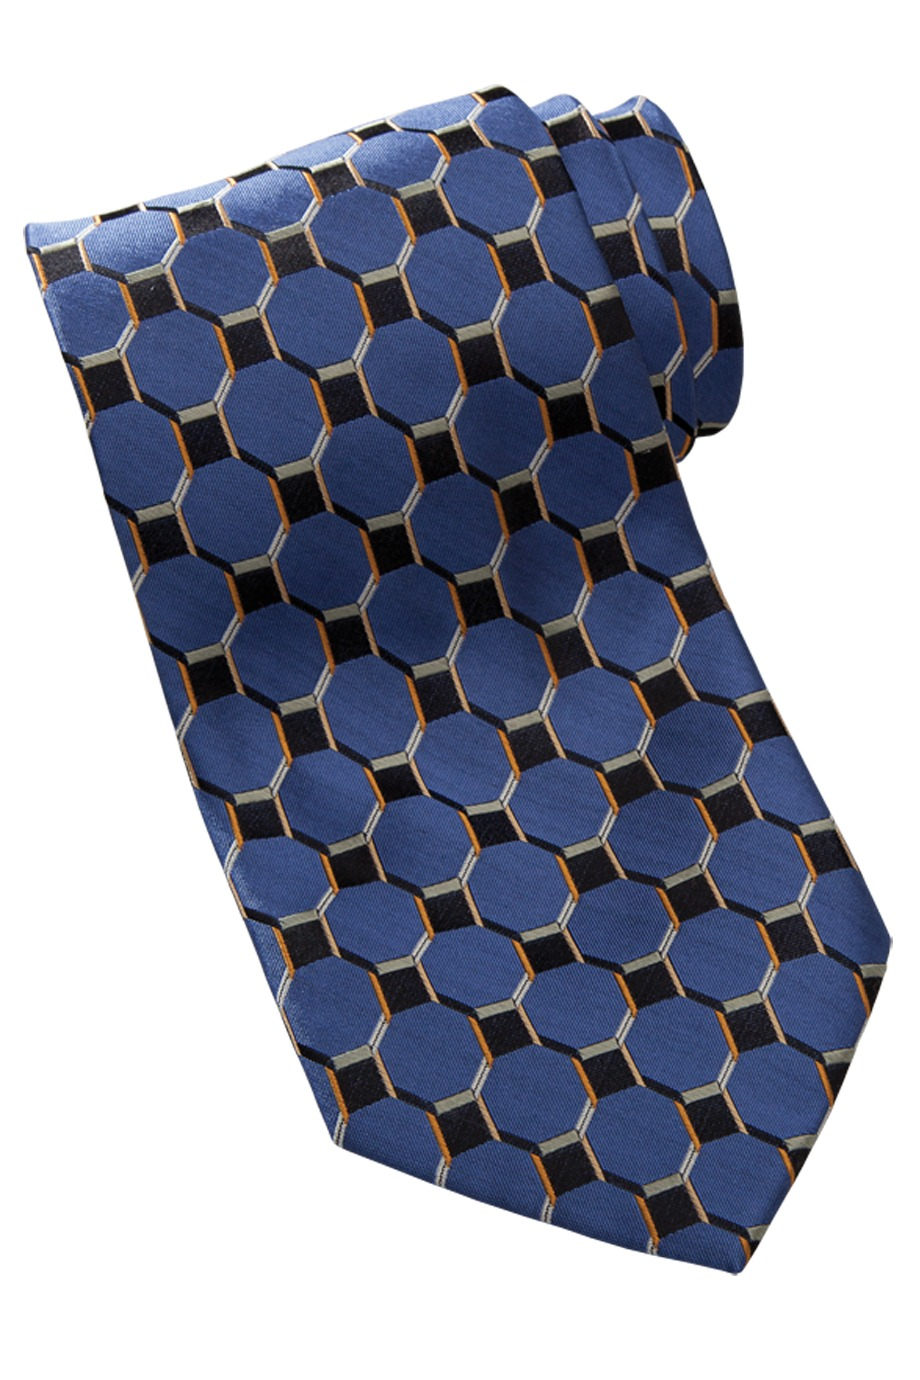 Edwards Garment HC00 - Signature Silk Honeycomb Tie